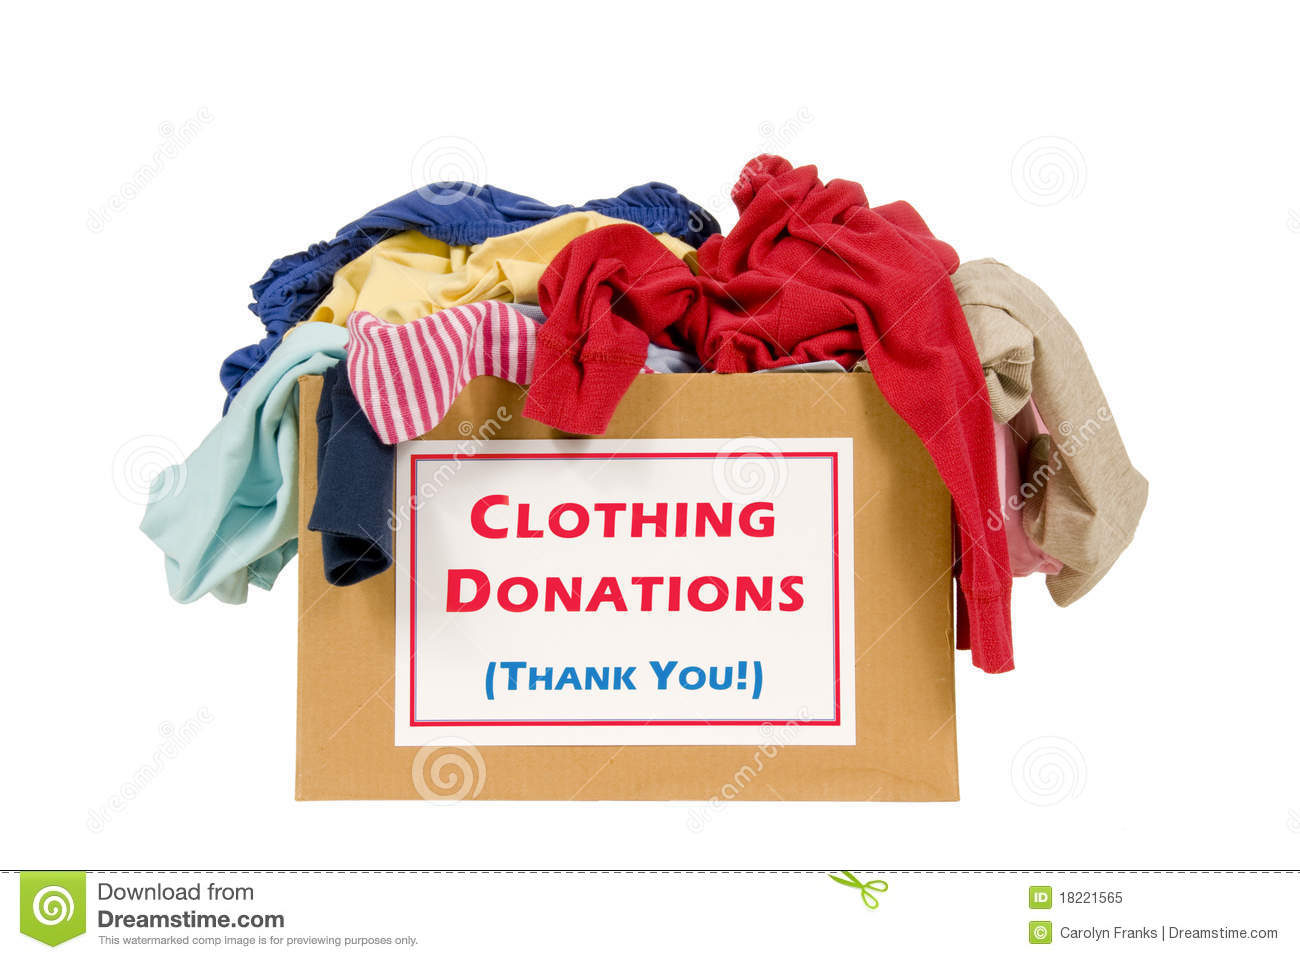 Clothes donation box royalty free stock photo image for Shirts that donate to charity